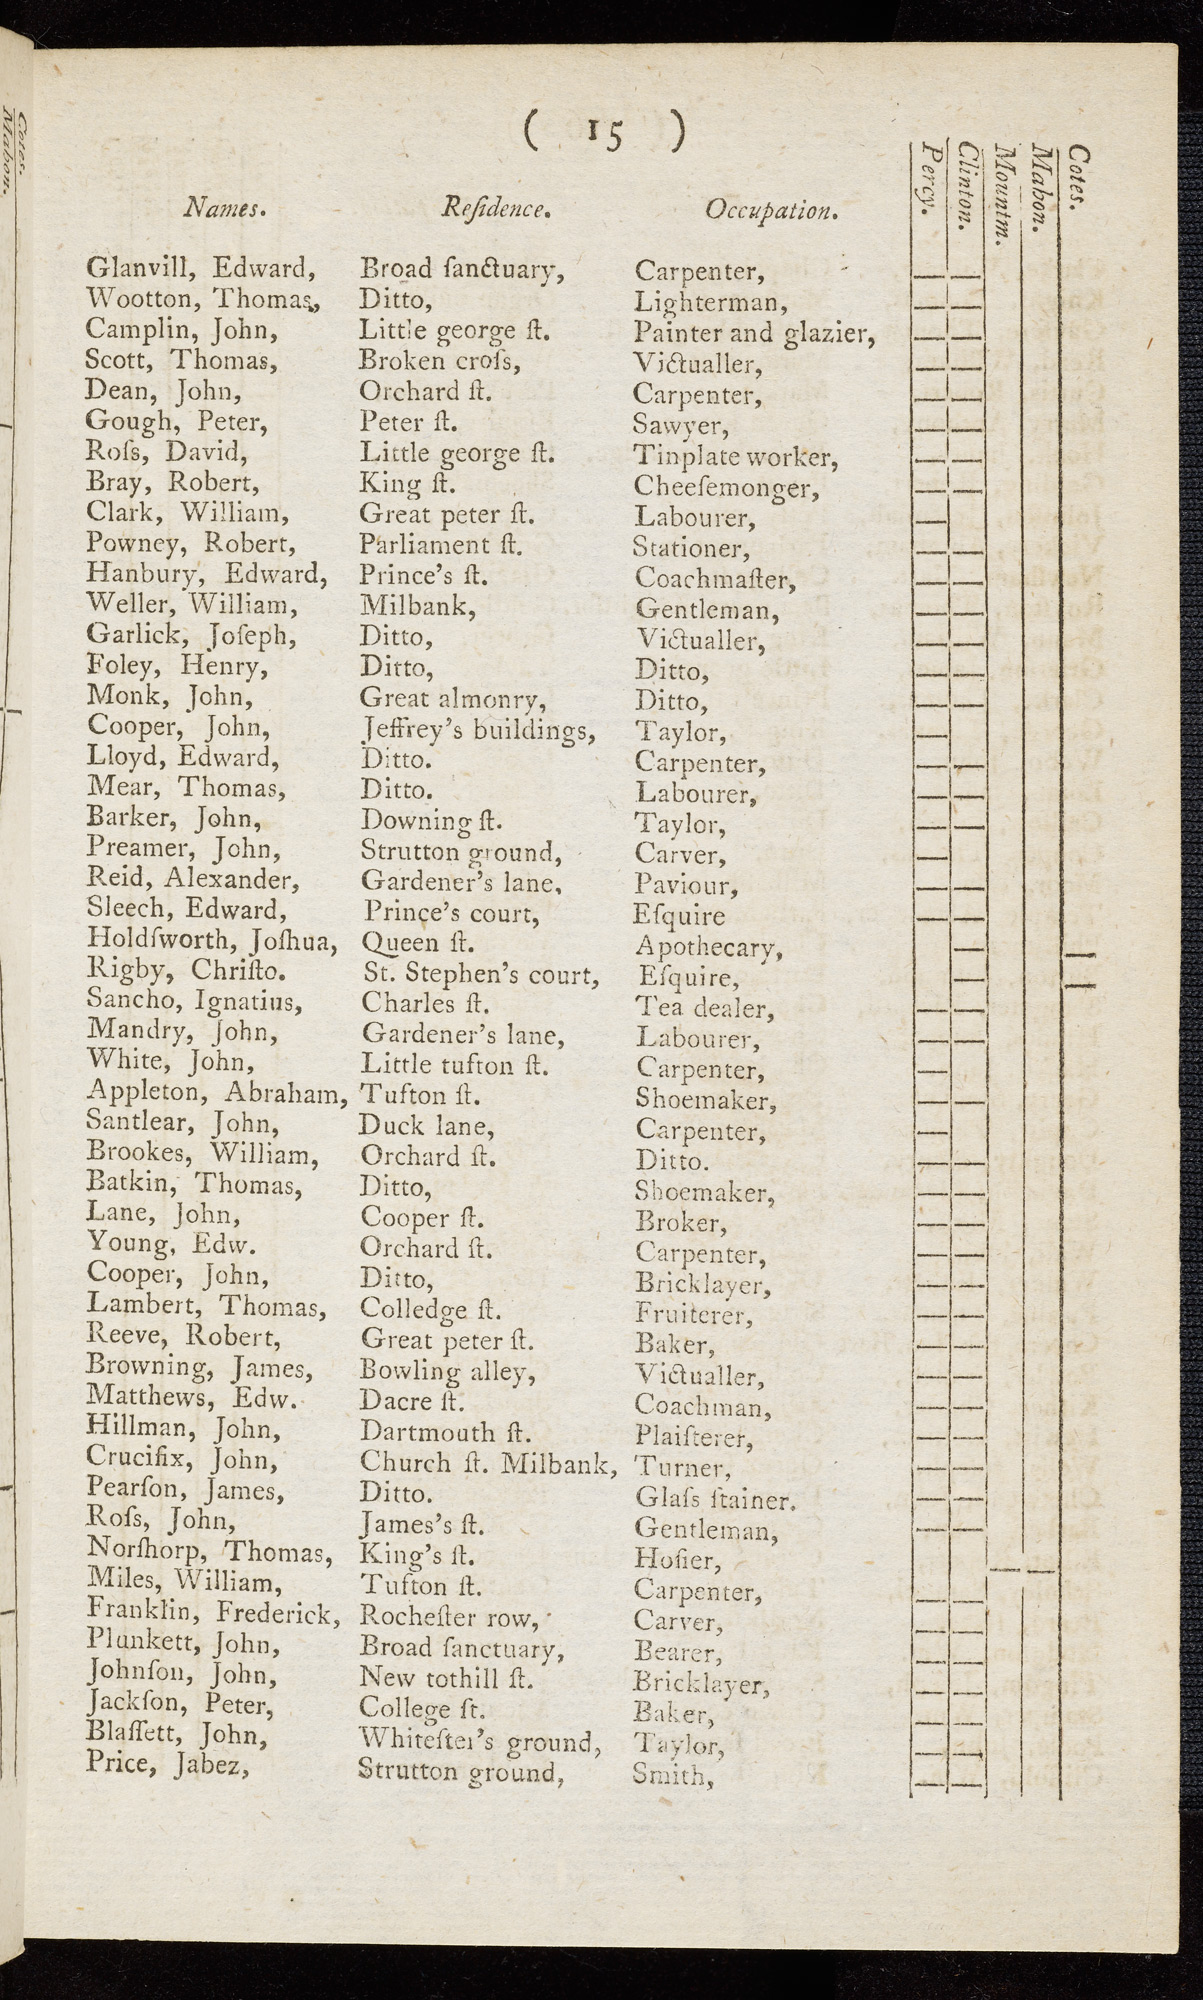 Record of Ignatius Sancho's vote in the Westminster election, October 1774